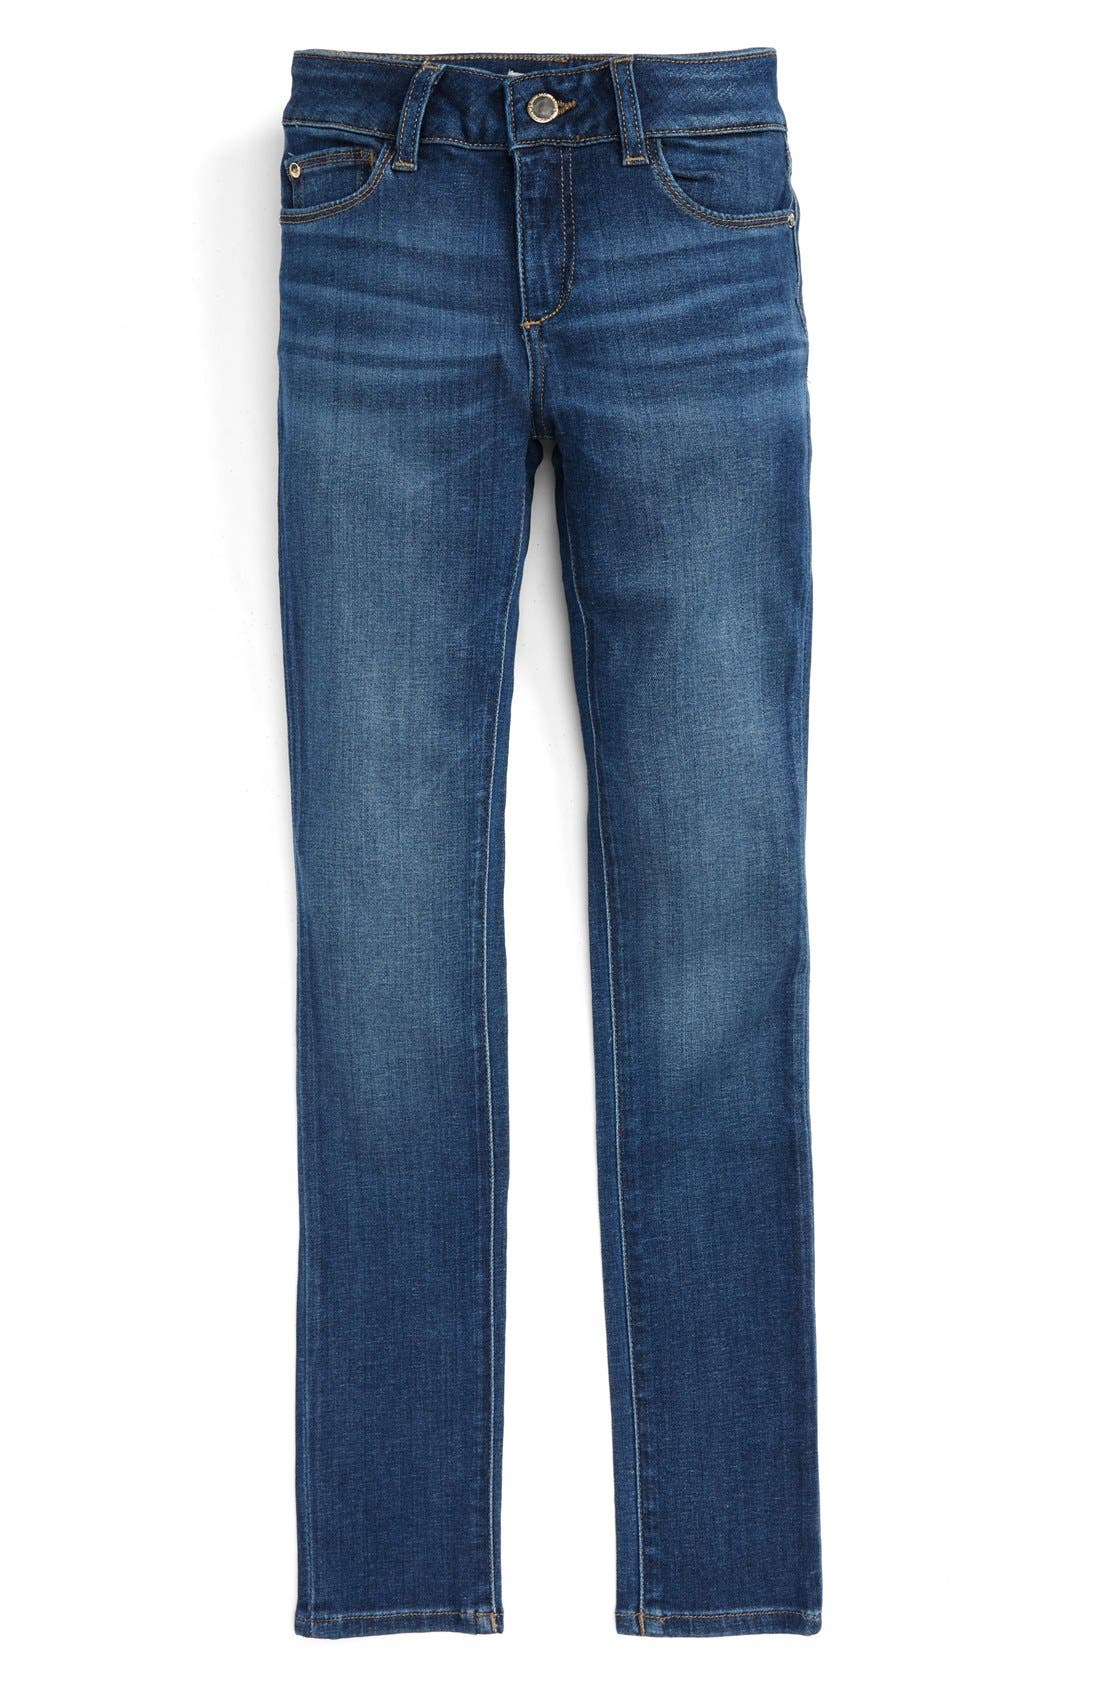 Girls Dl1961 Chloe Mid Rise Skinny Jeans Size 12  Blue